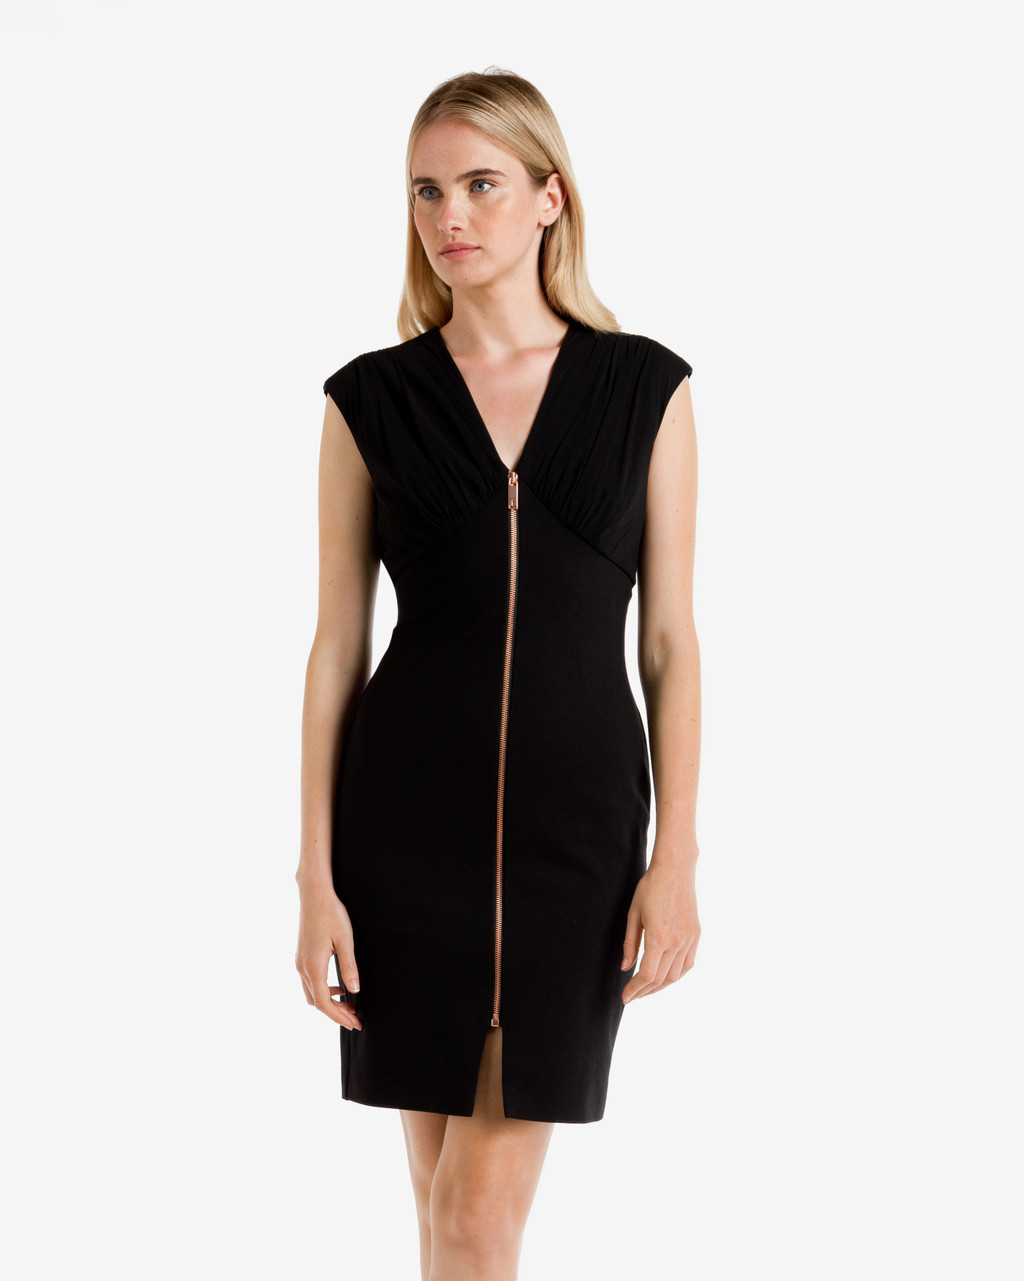 Zip Front Bodycon Dress Black - neckline: v-neck; fit: tight; pattern: plain; sleeve style: sleeveless; style: bodycon; predominant colour: black; occasions: evening; length: just above the knee; fibres: viscose/rayon - stretch; sleeve length: sleeveless; texture group: jersey - clingy; pattern type: fabric; season: a/w 2016; wardrobe: event